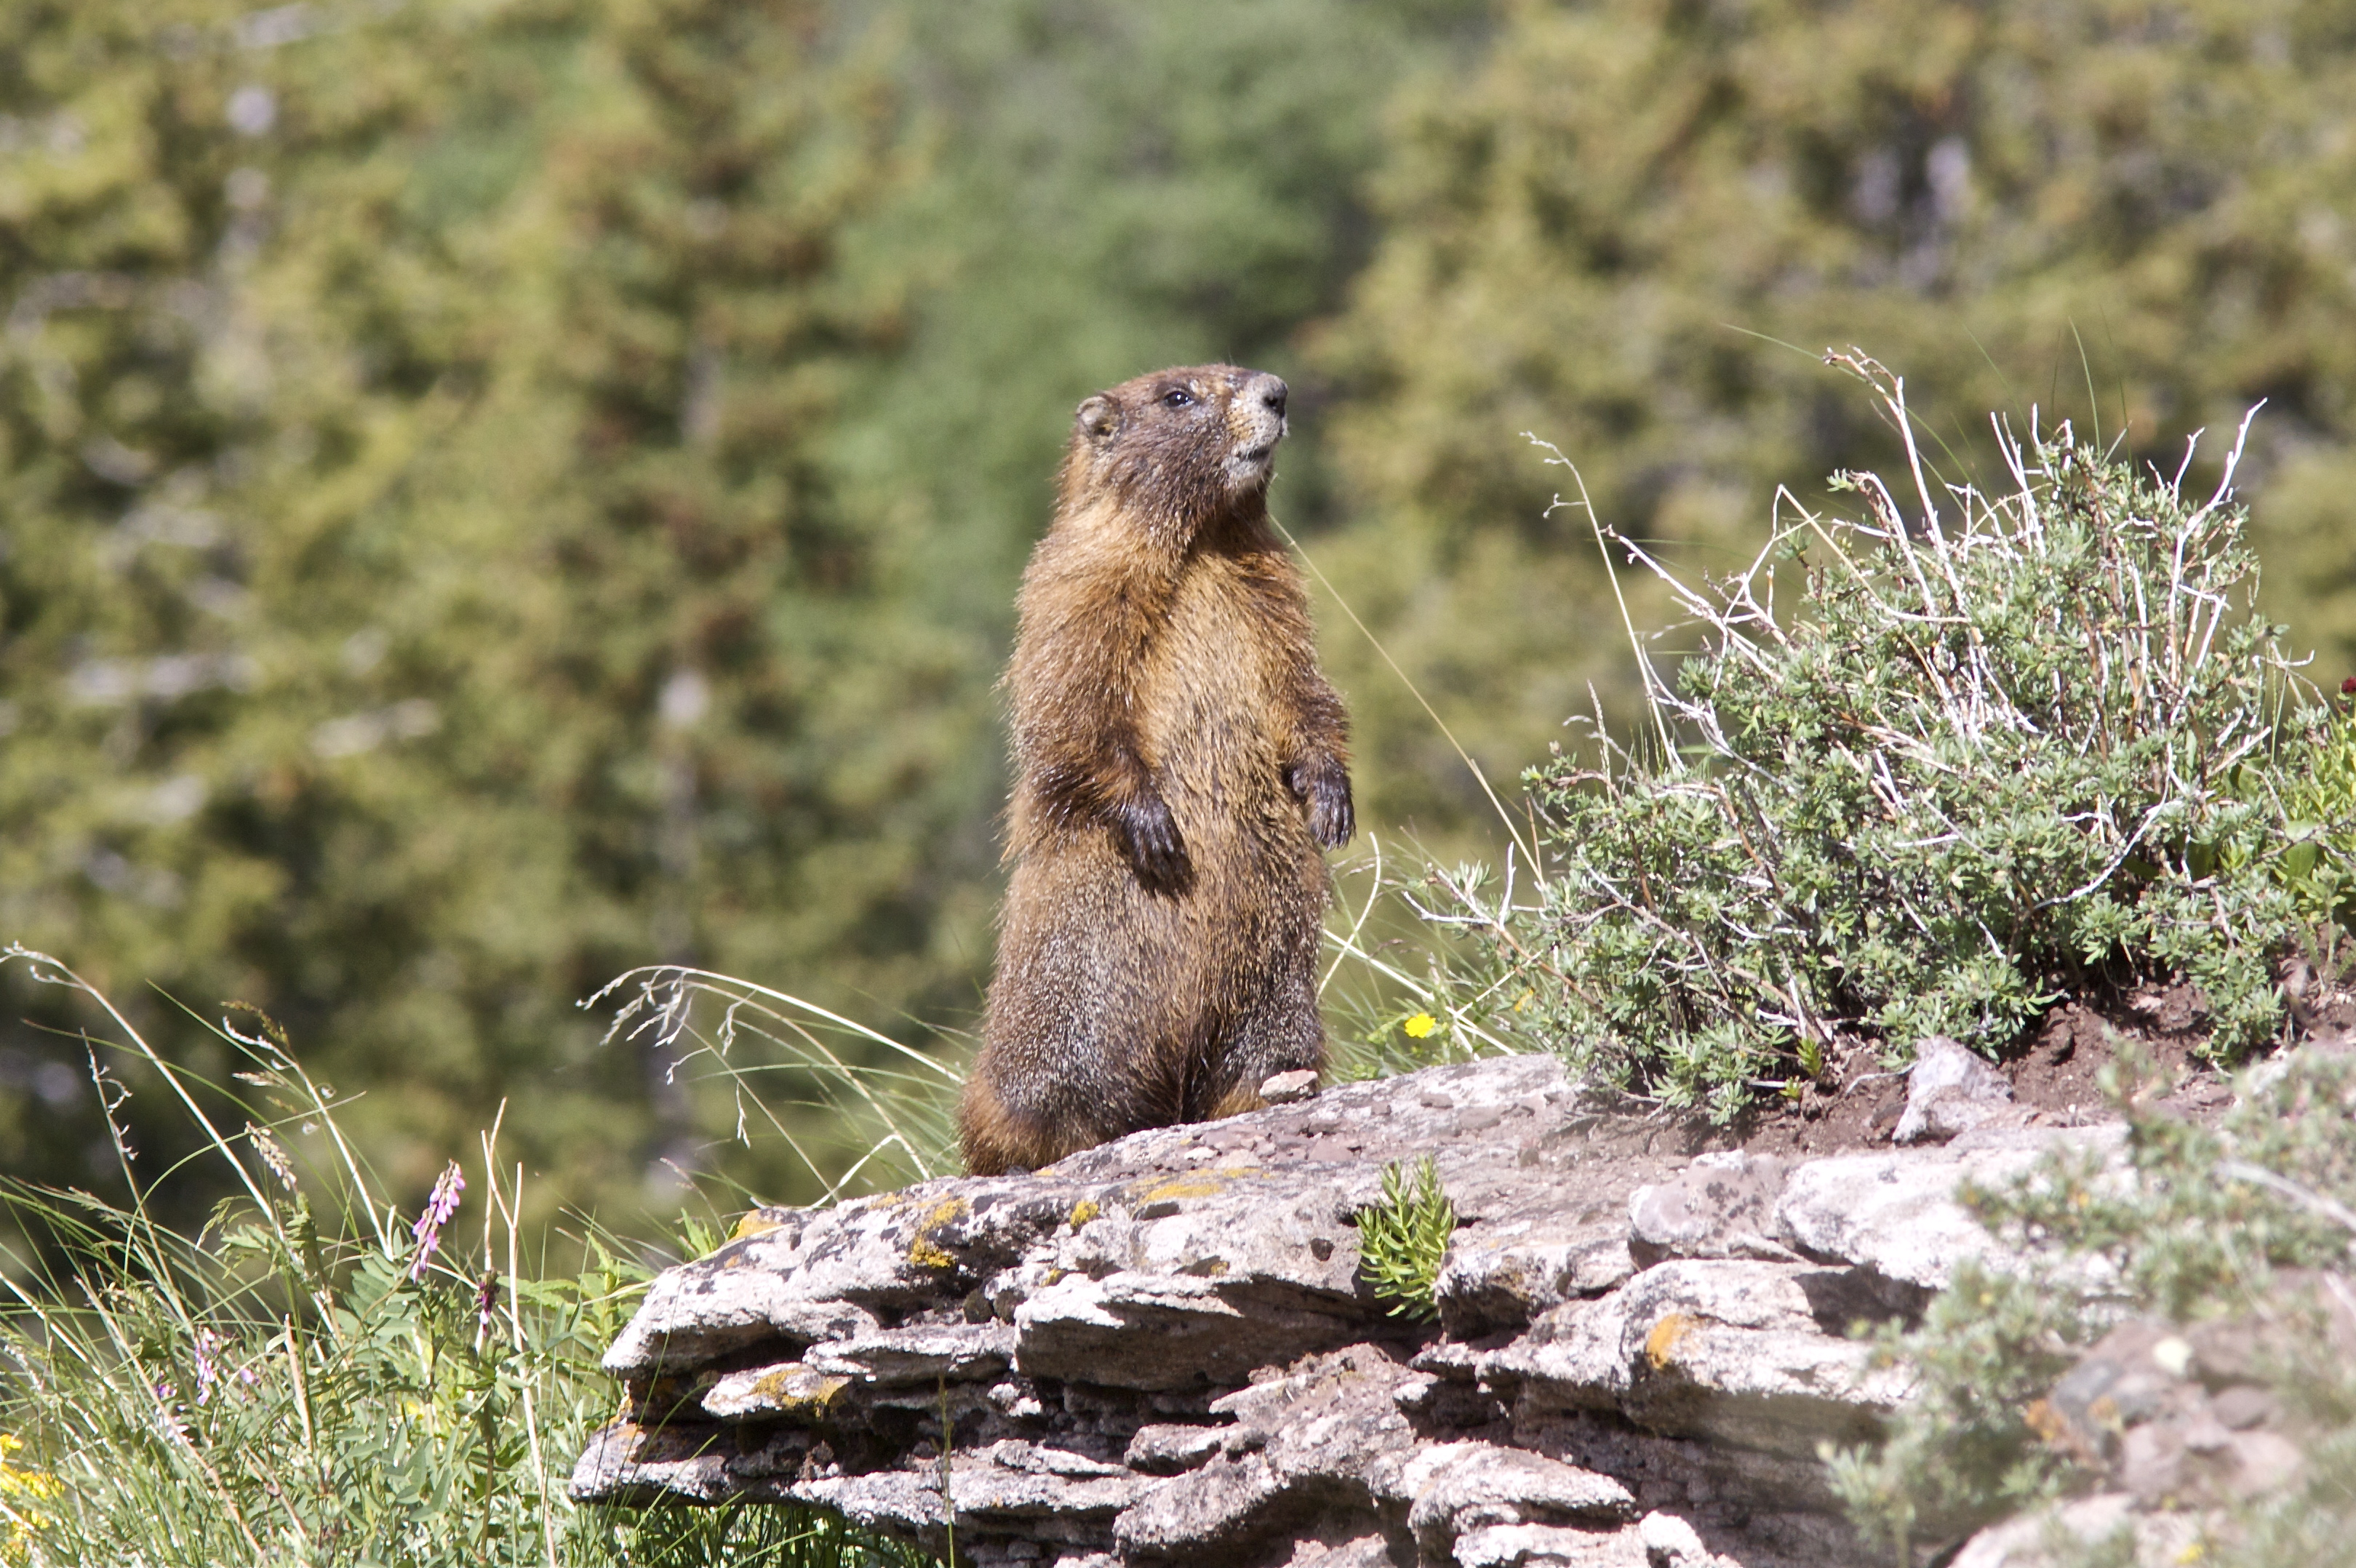 An adult yellow-bellied marmot